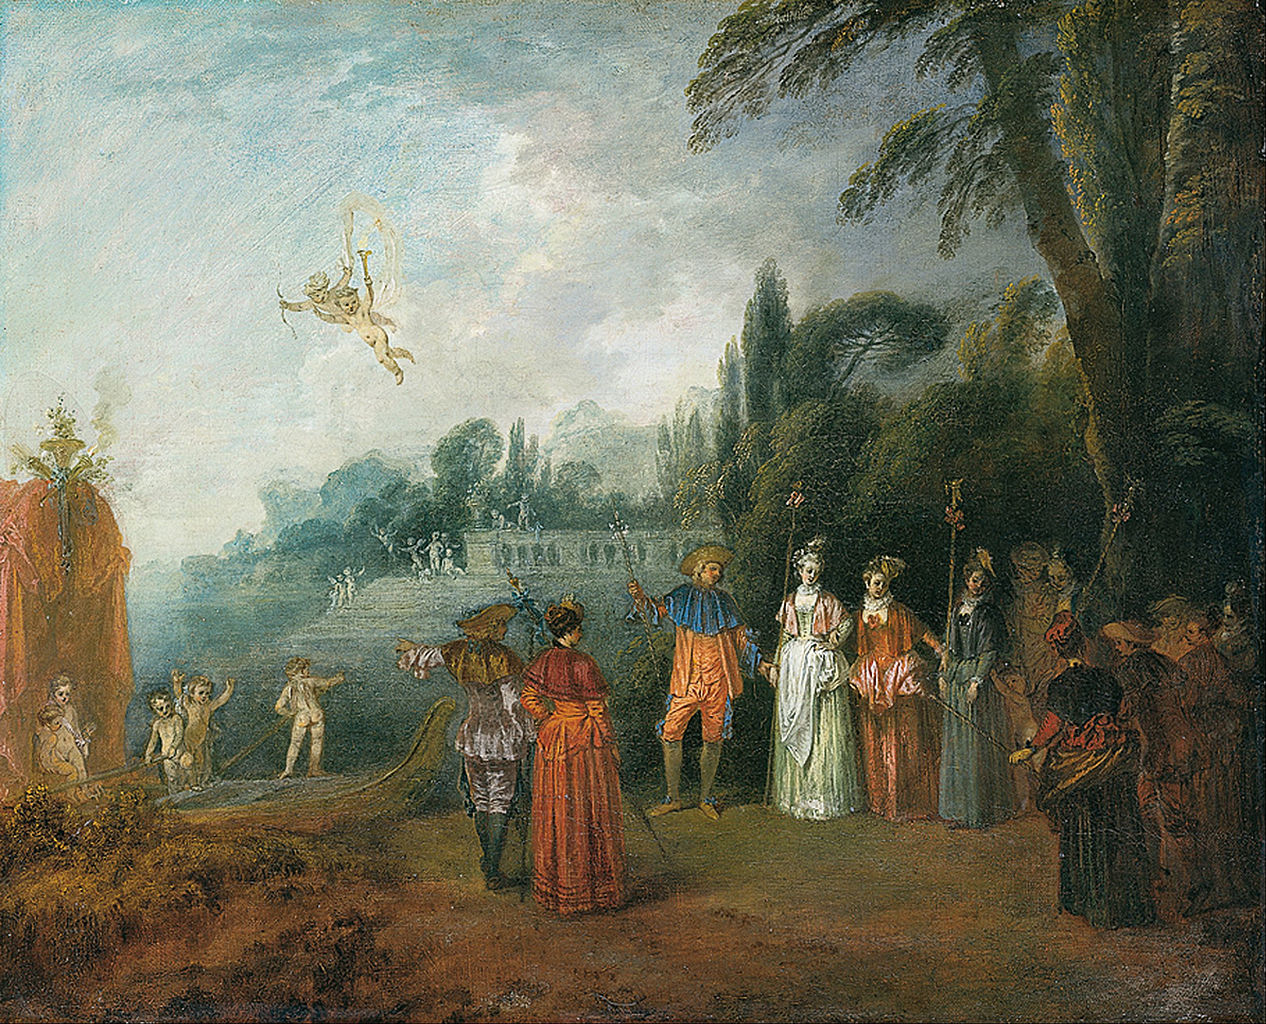 Jean-Antoine_Watteau_-_Embarking_to_Cythera_-_Google_Art_Project